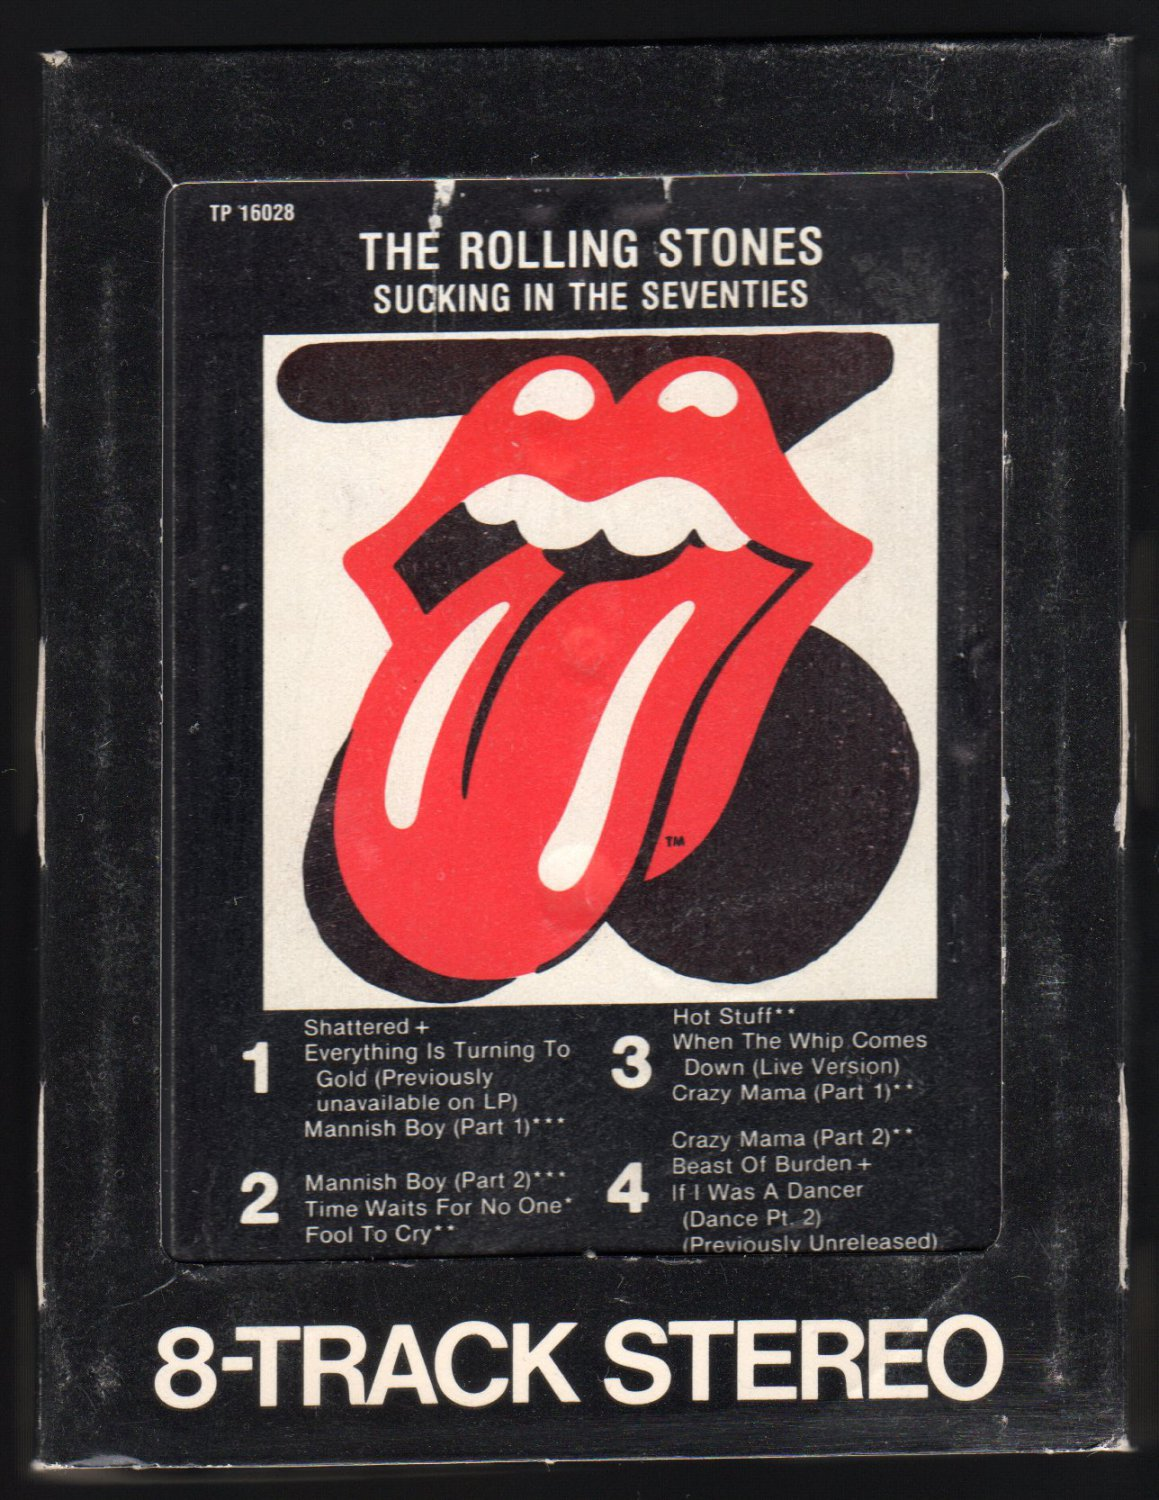 The Rolling Stones - Sucking In The Seventies 1981 WB A19A 8-TRACK TAPE